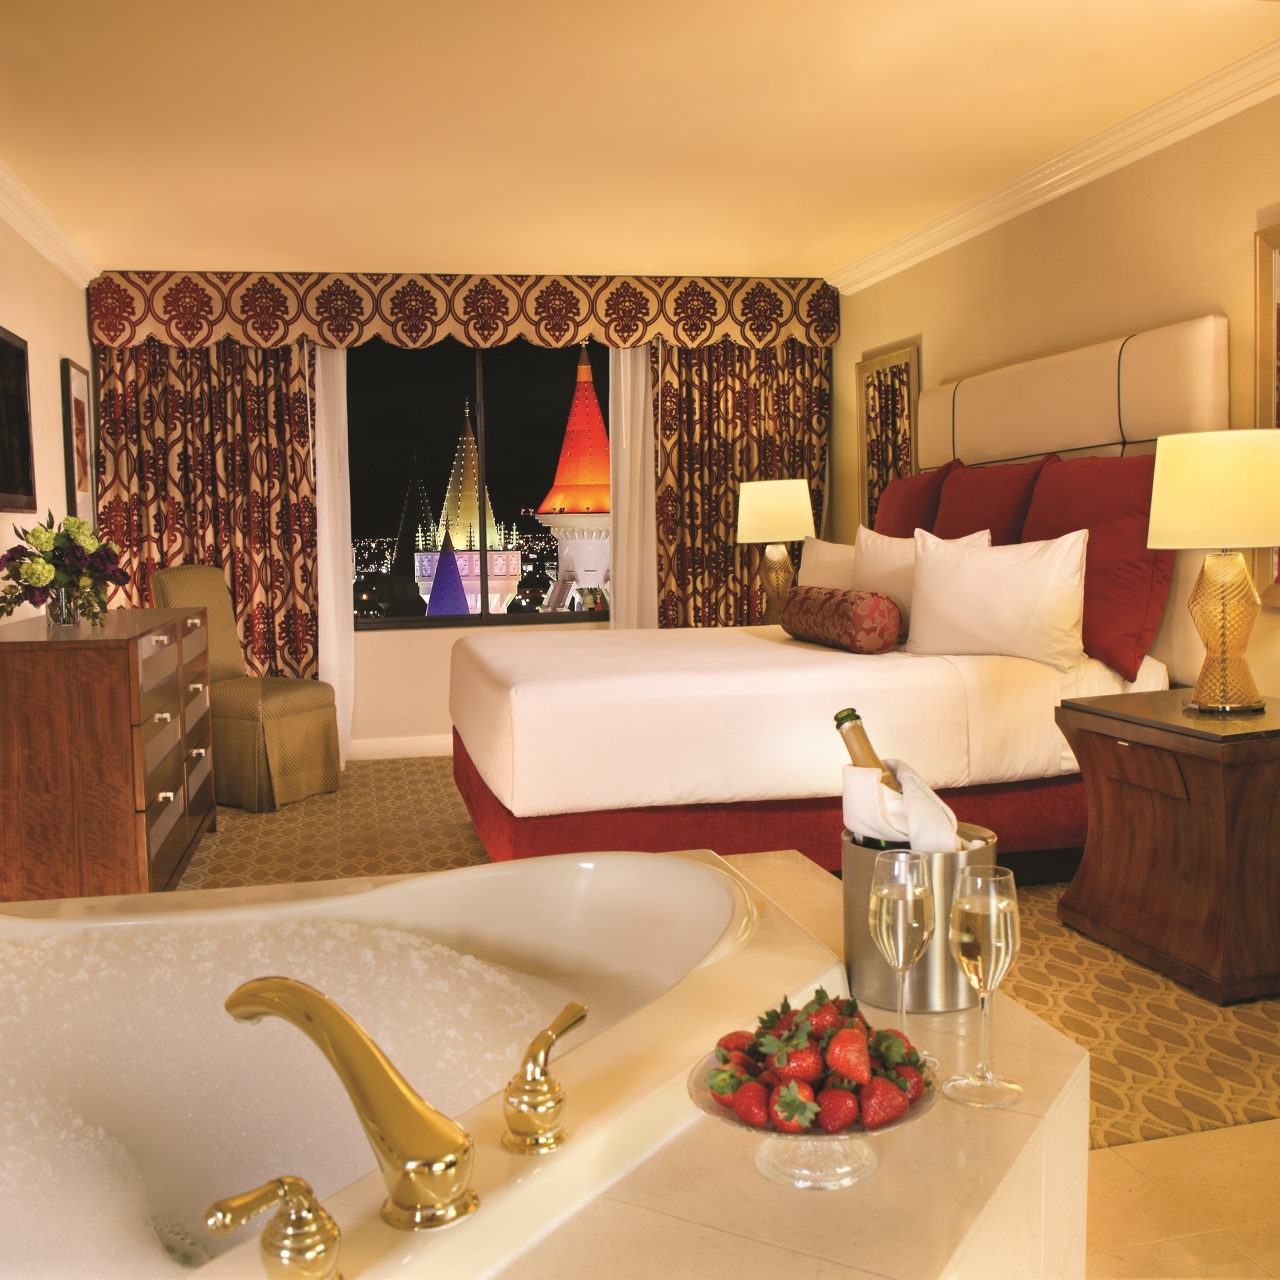 Mgm Excalibur Hotel And Casino United States Of America At Hrs With Free Services